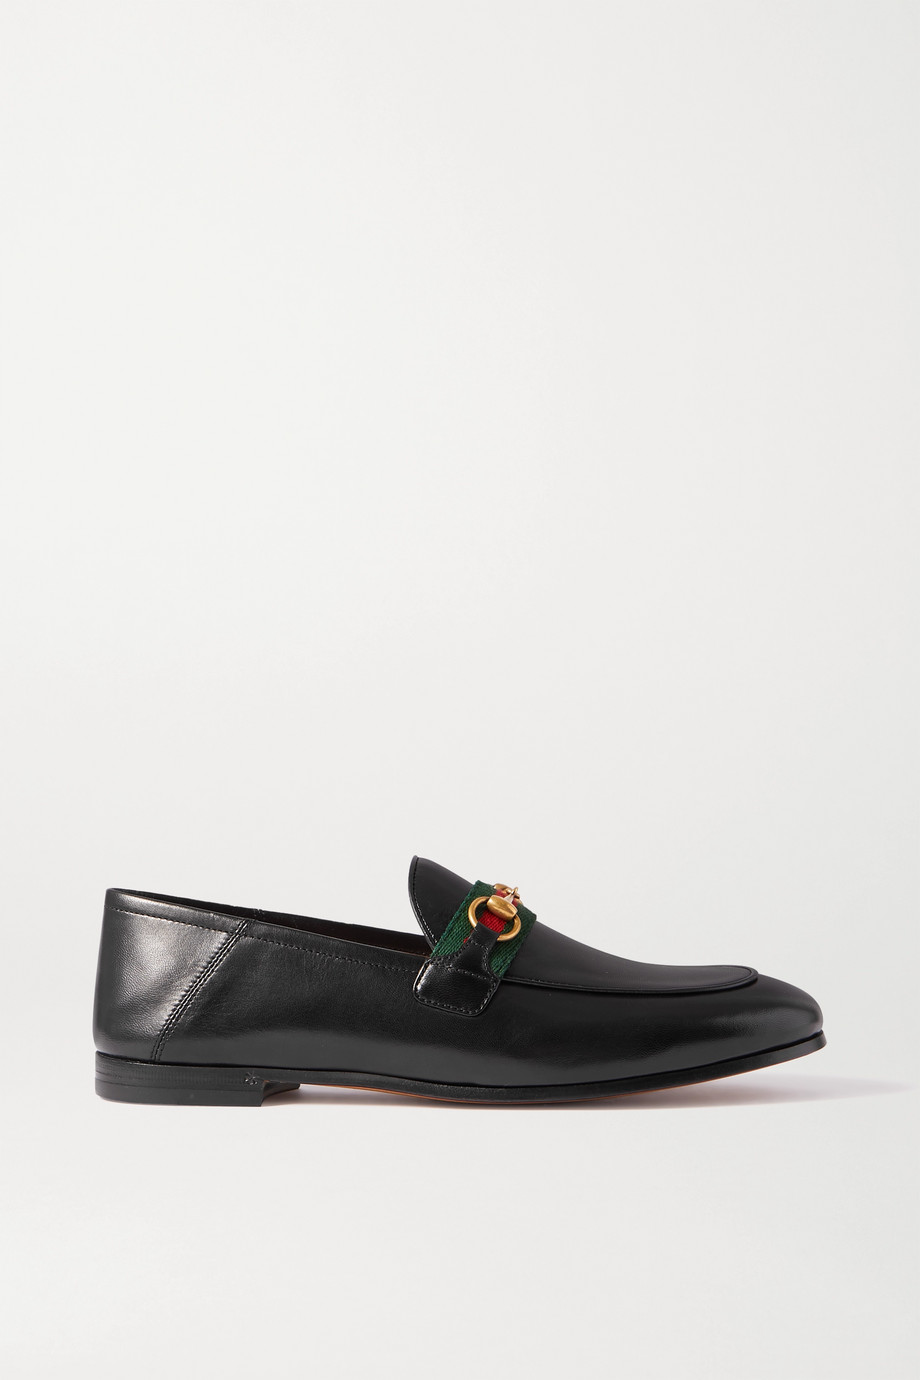 Gucci Brixton horsebit-detailed webbing-trimmed leather collapsible-heel loafers